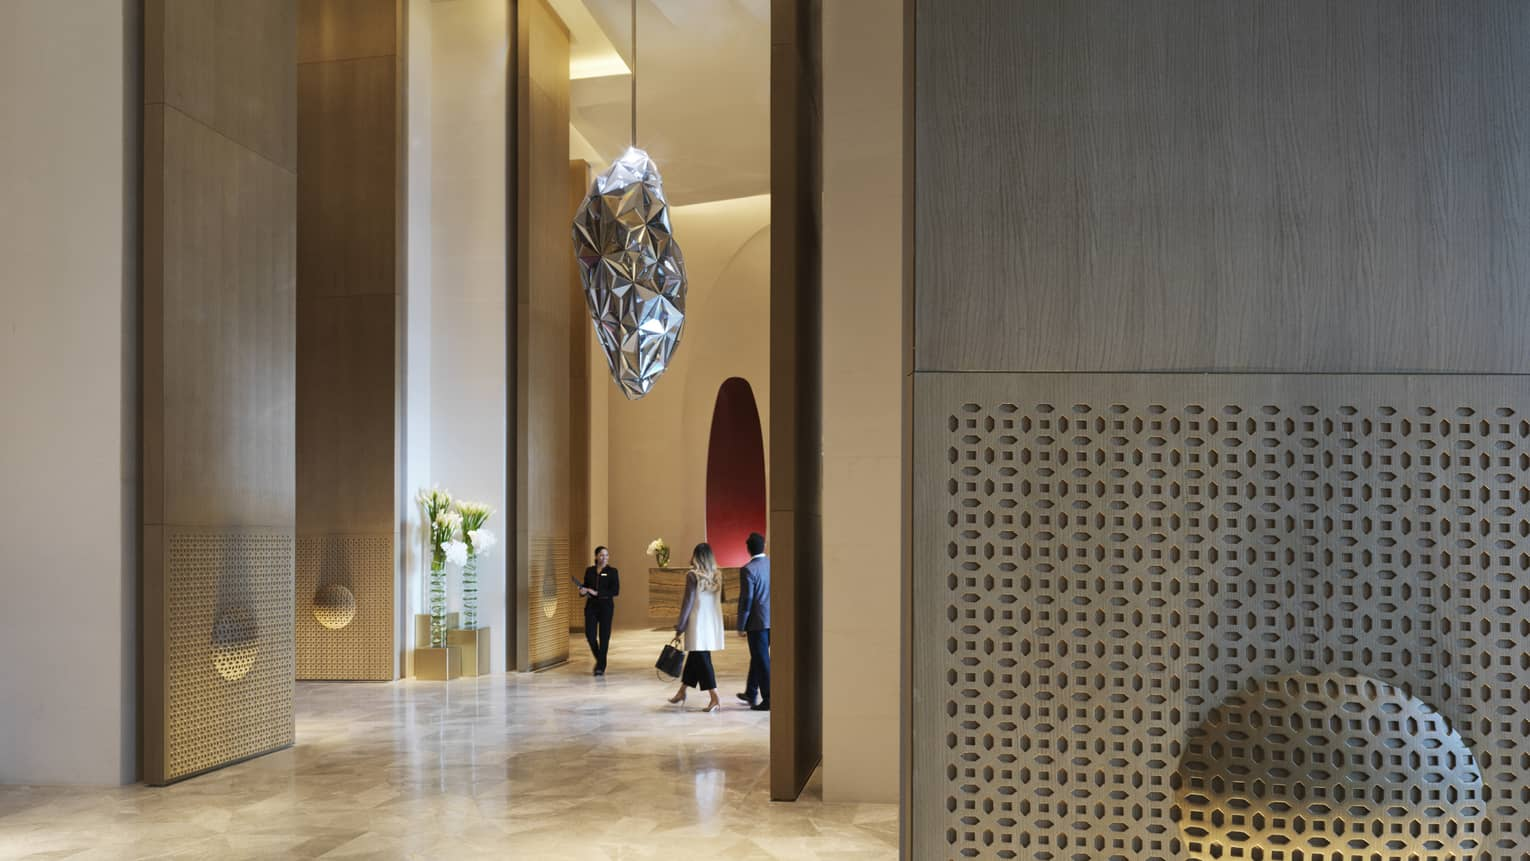 Man and woman, hotel staff walk through large modern lobby under silver sculpture hanging from soaring ceilings